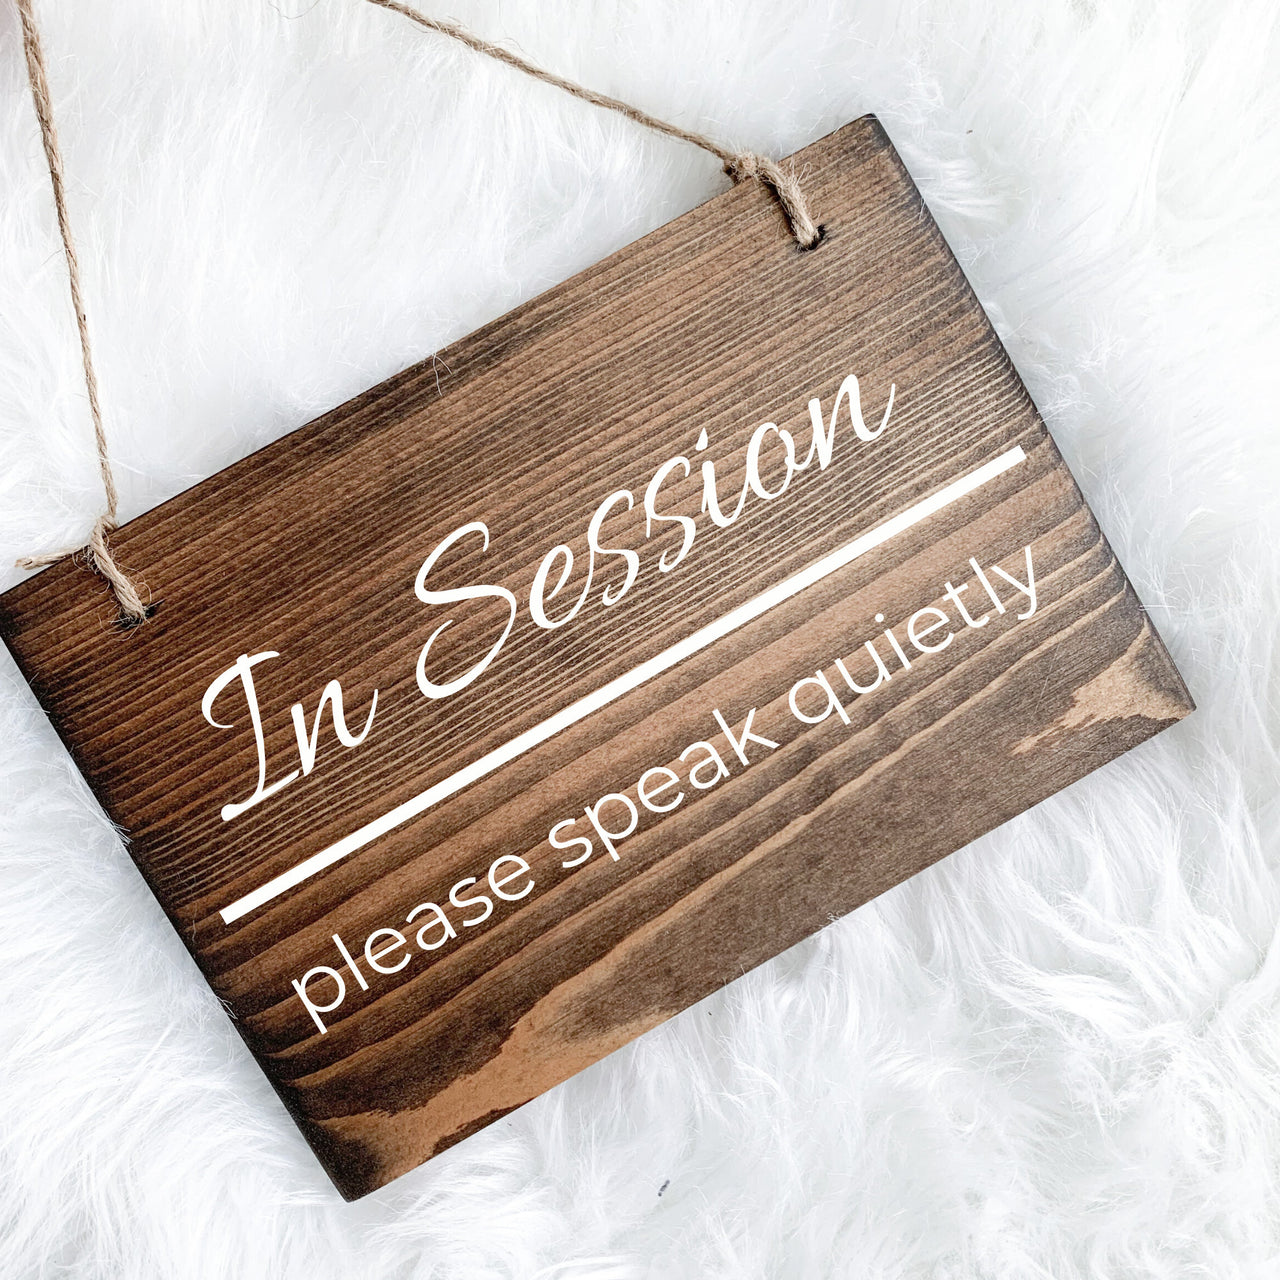 In Session Please Please Speak Quietly Sign, In Session Sign, please do not disturb sign, Treatment in Session, Closed Sign, With a Client